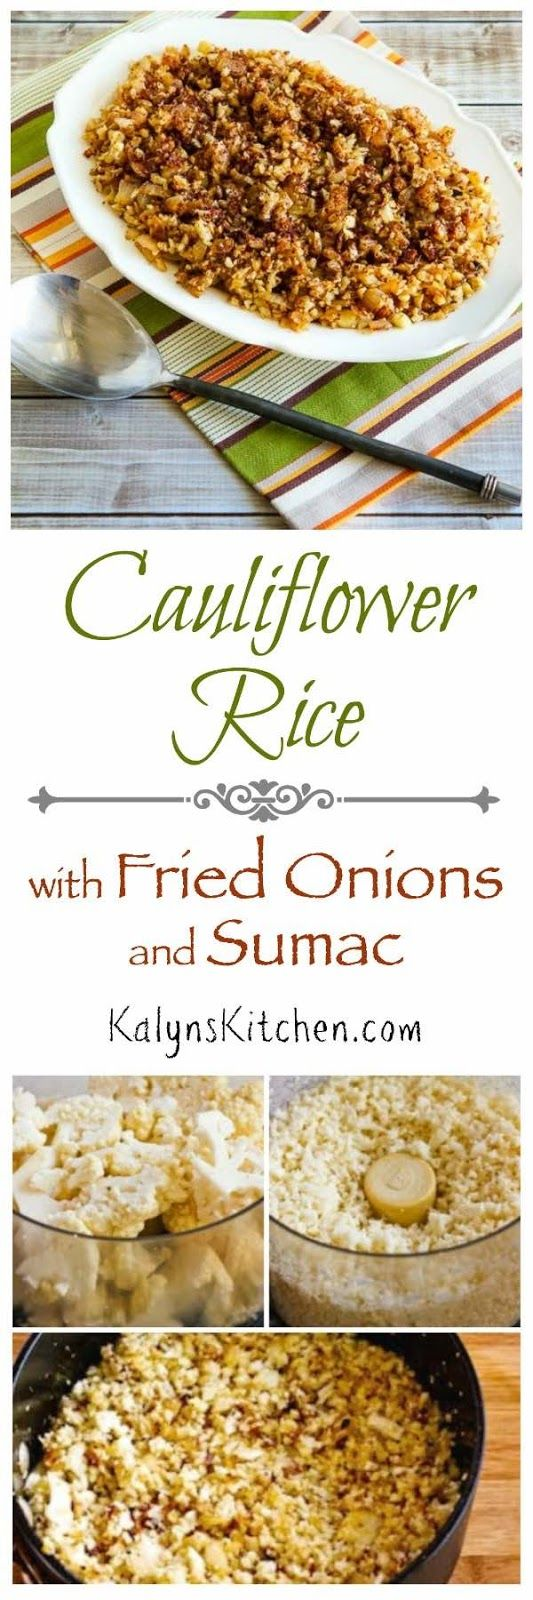 I love this Low-Carb Cauliflower Rice with Fried Onions and Sumac, and this recipe is also Keto- low-glycemic, gluten-free, Paleo, Whole 30, and vegan. If you don't want to buy the middle eastern seasoning called Sumac, use another seasoning that you like on rice.  [found on KalynsKitchen.com]